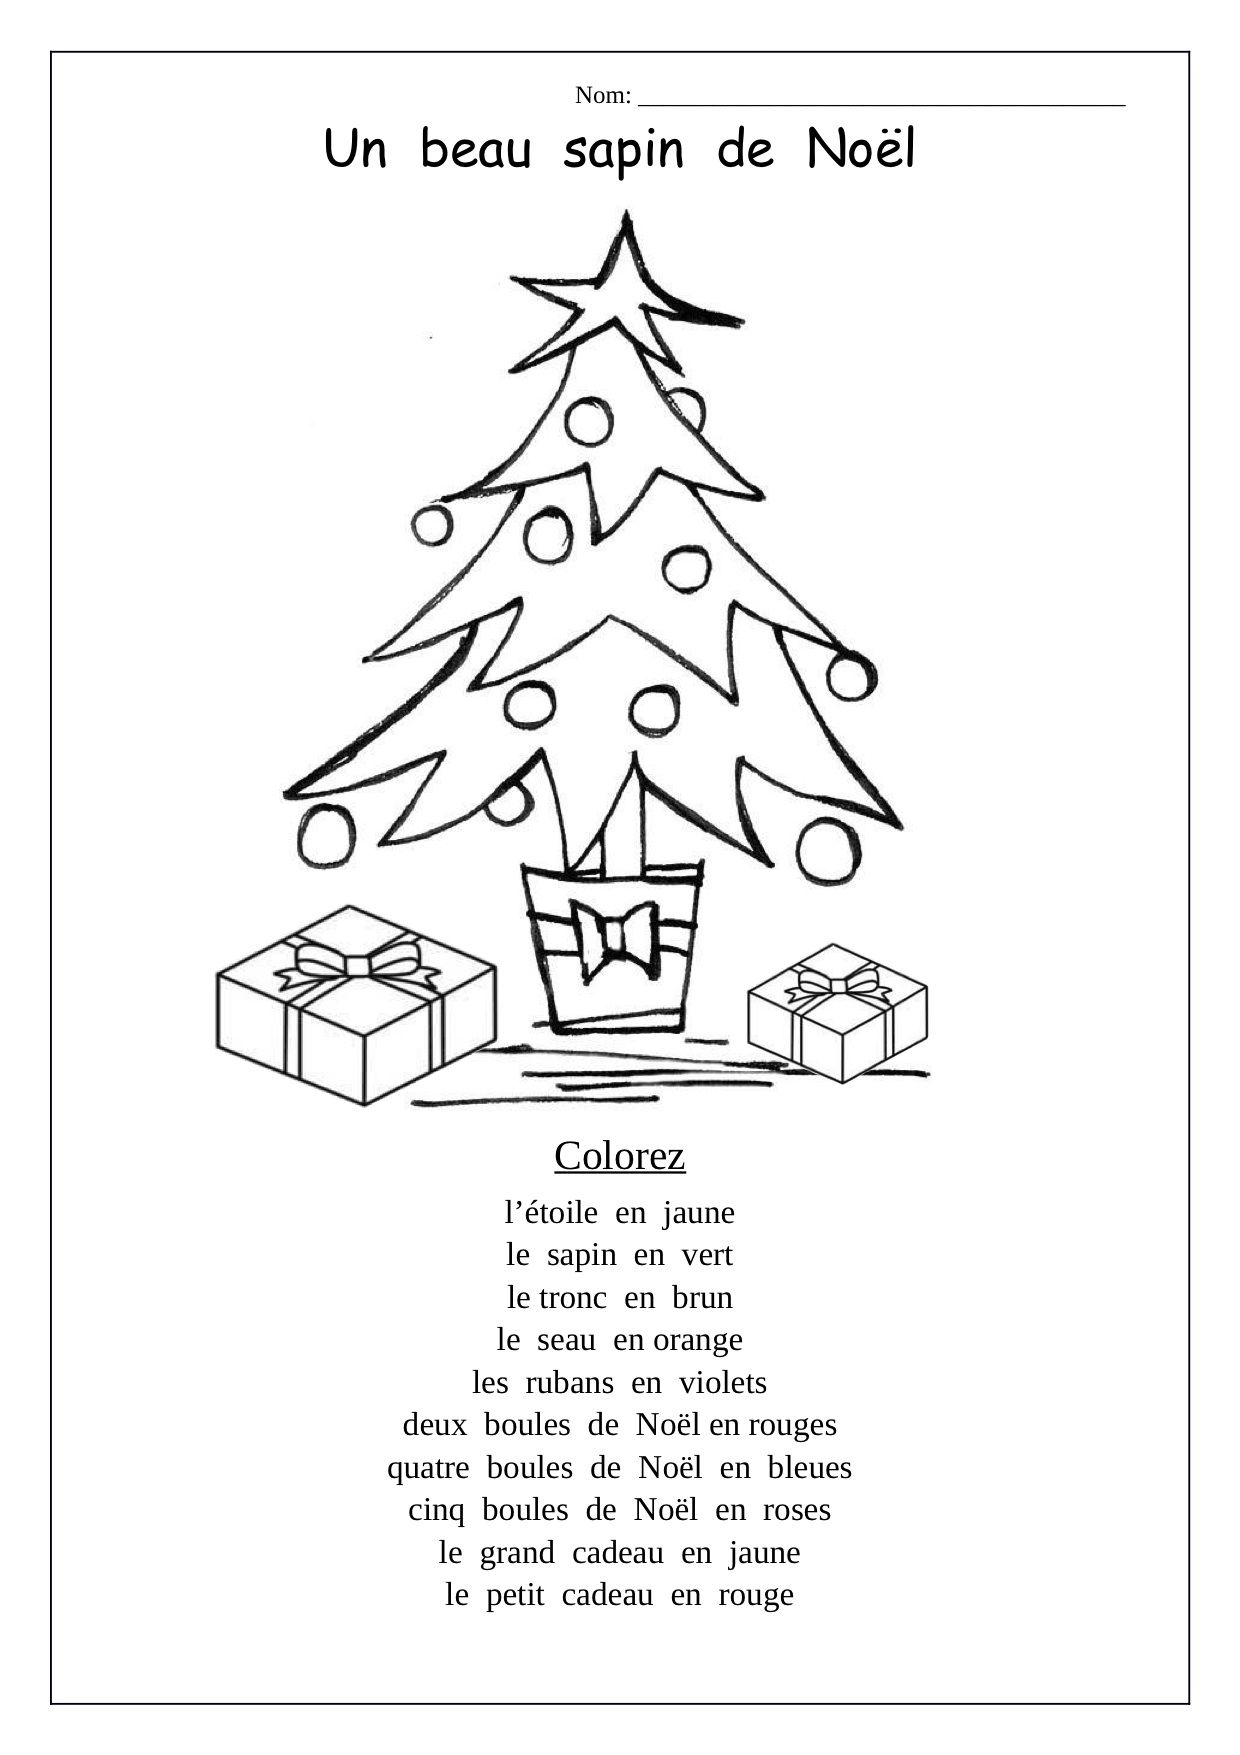 French Christmas Coloring Sheet Following Directions